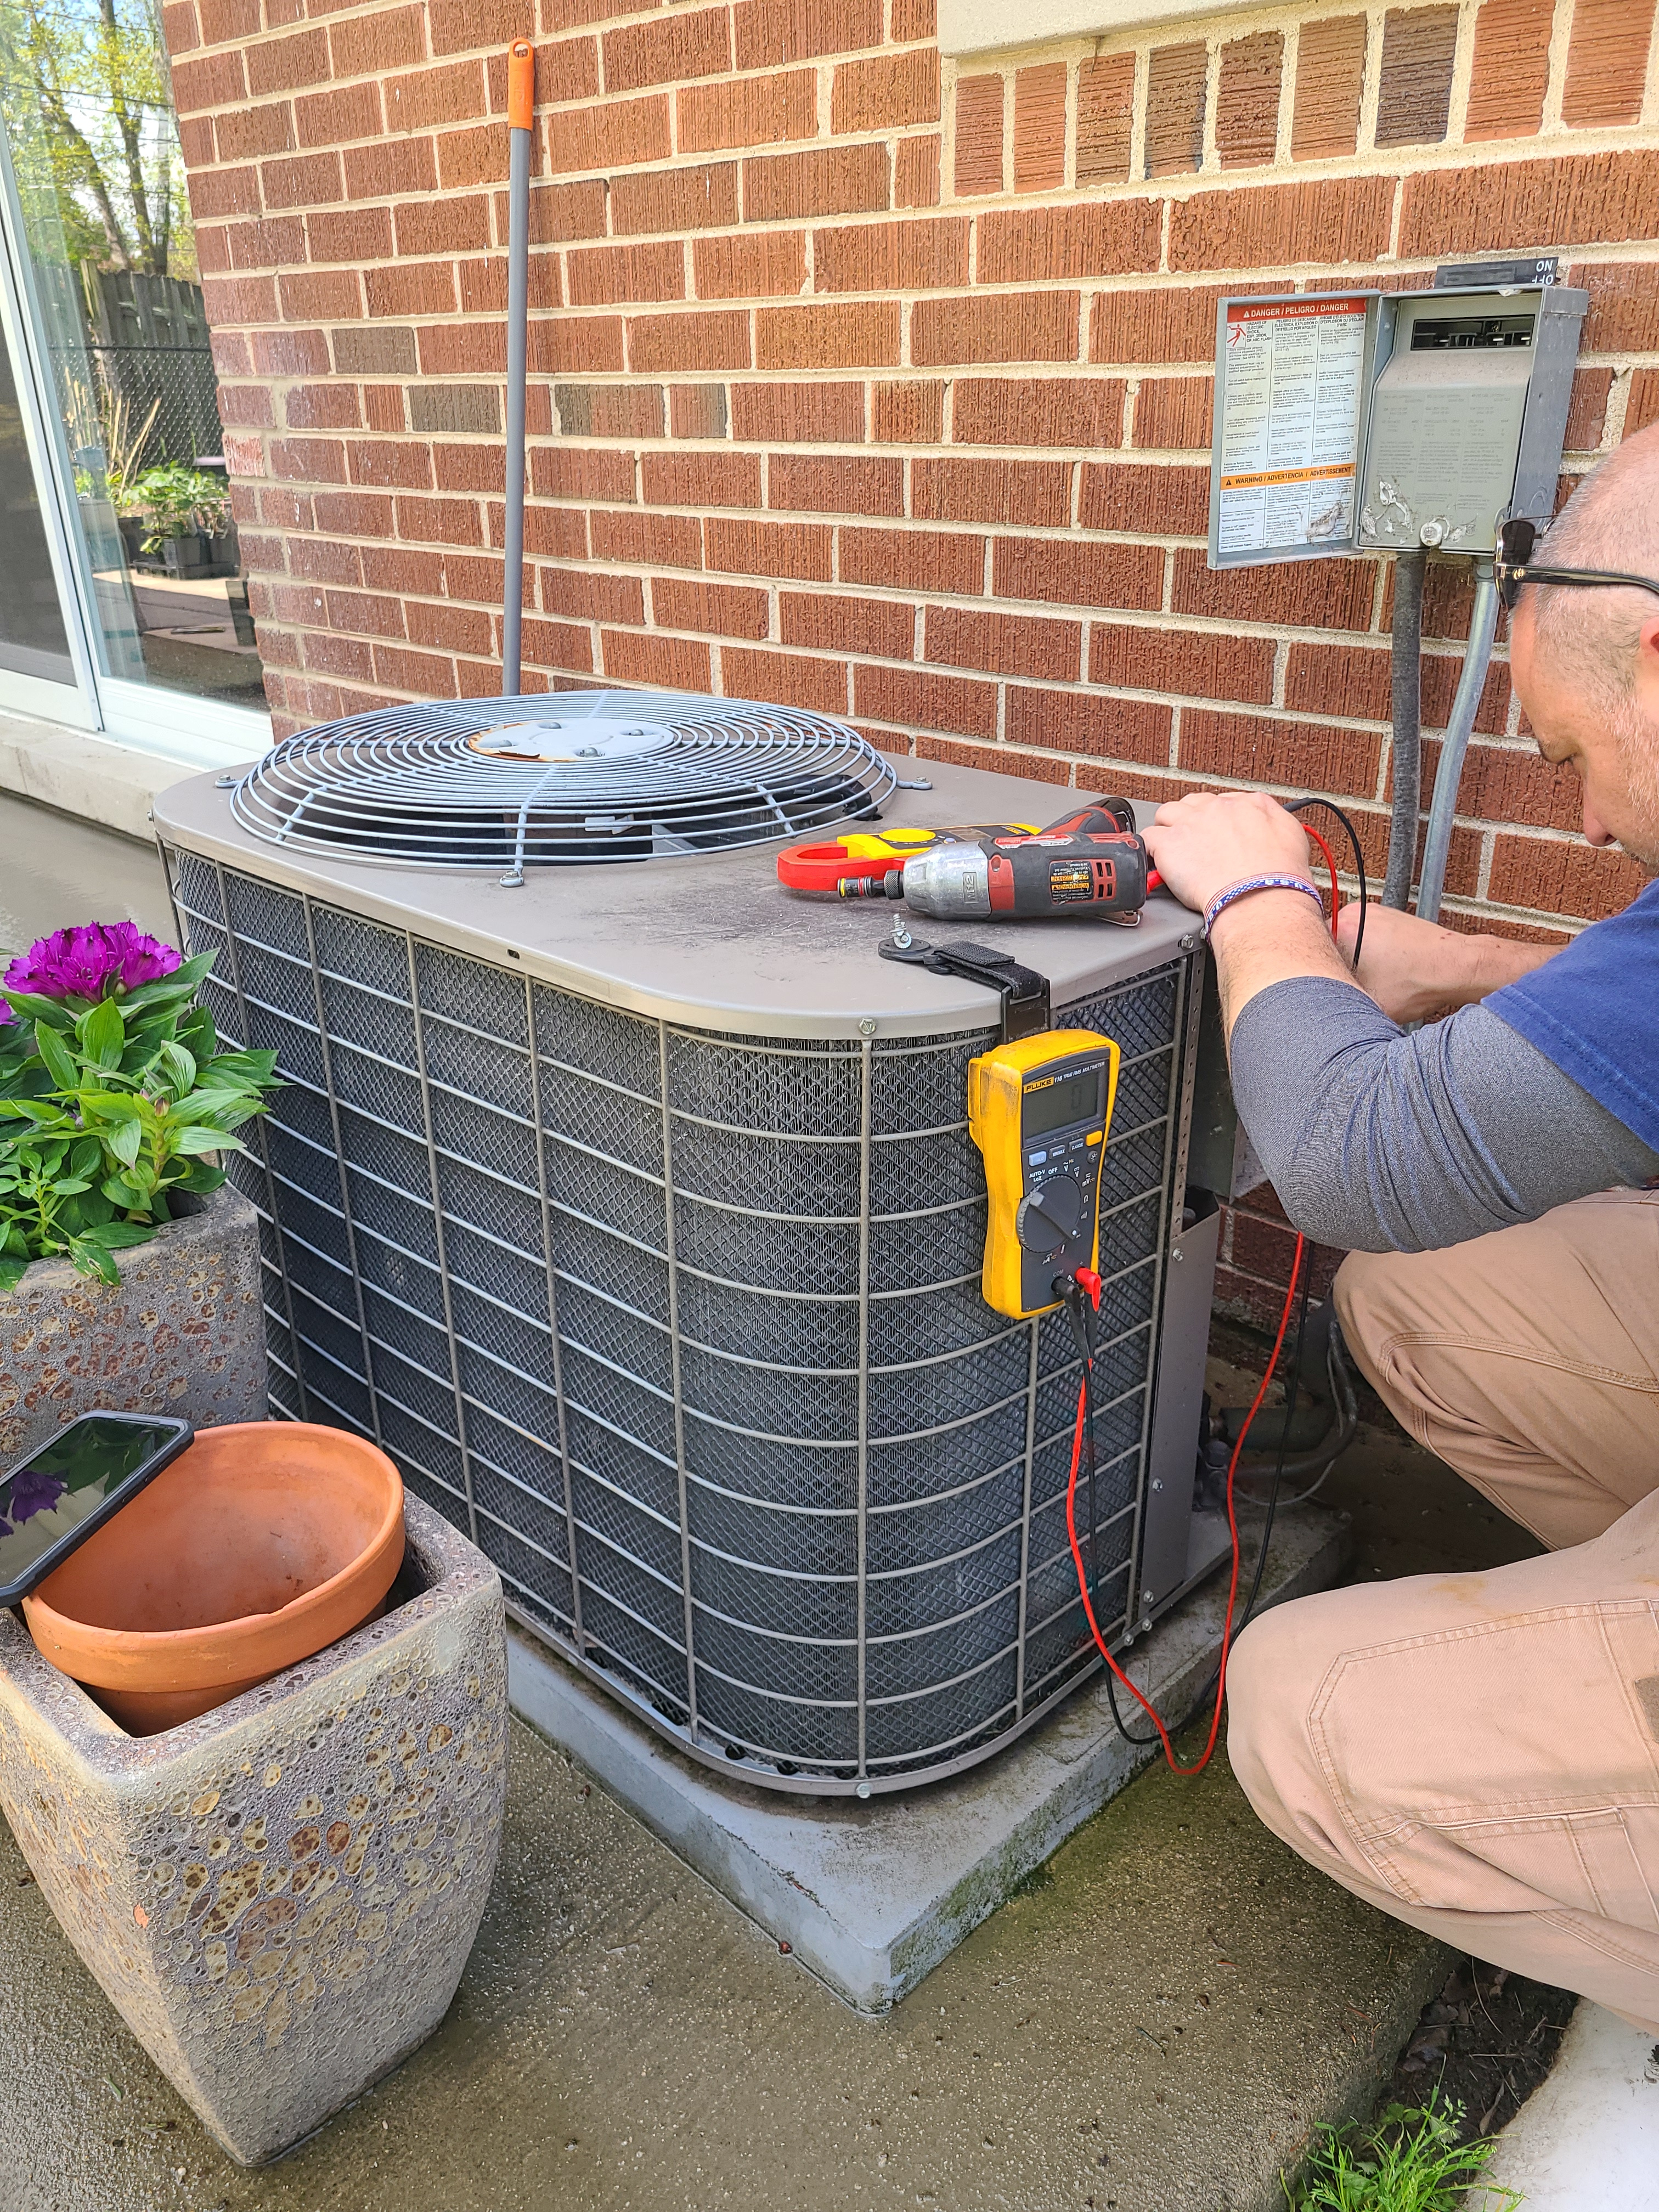 York air conditioning system cleaned and checked, ready for spring.